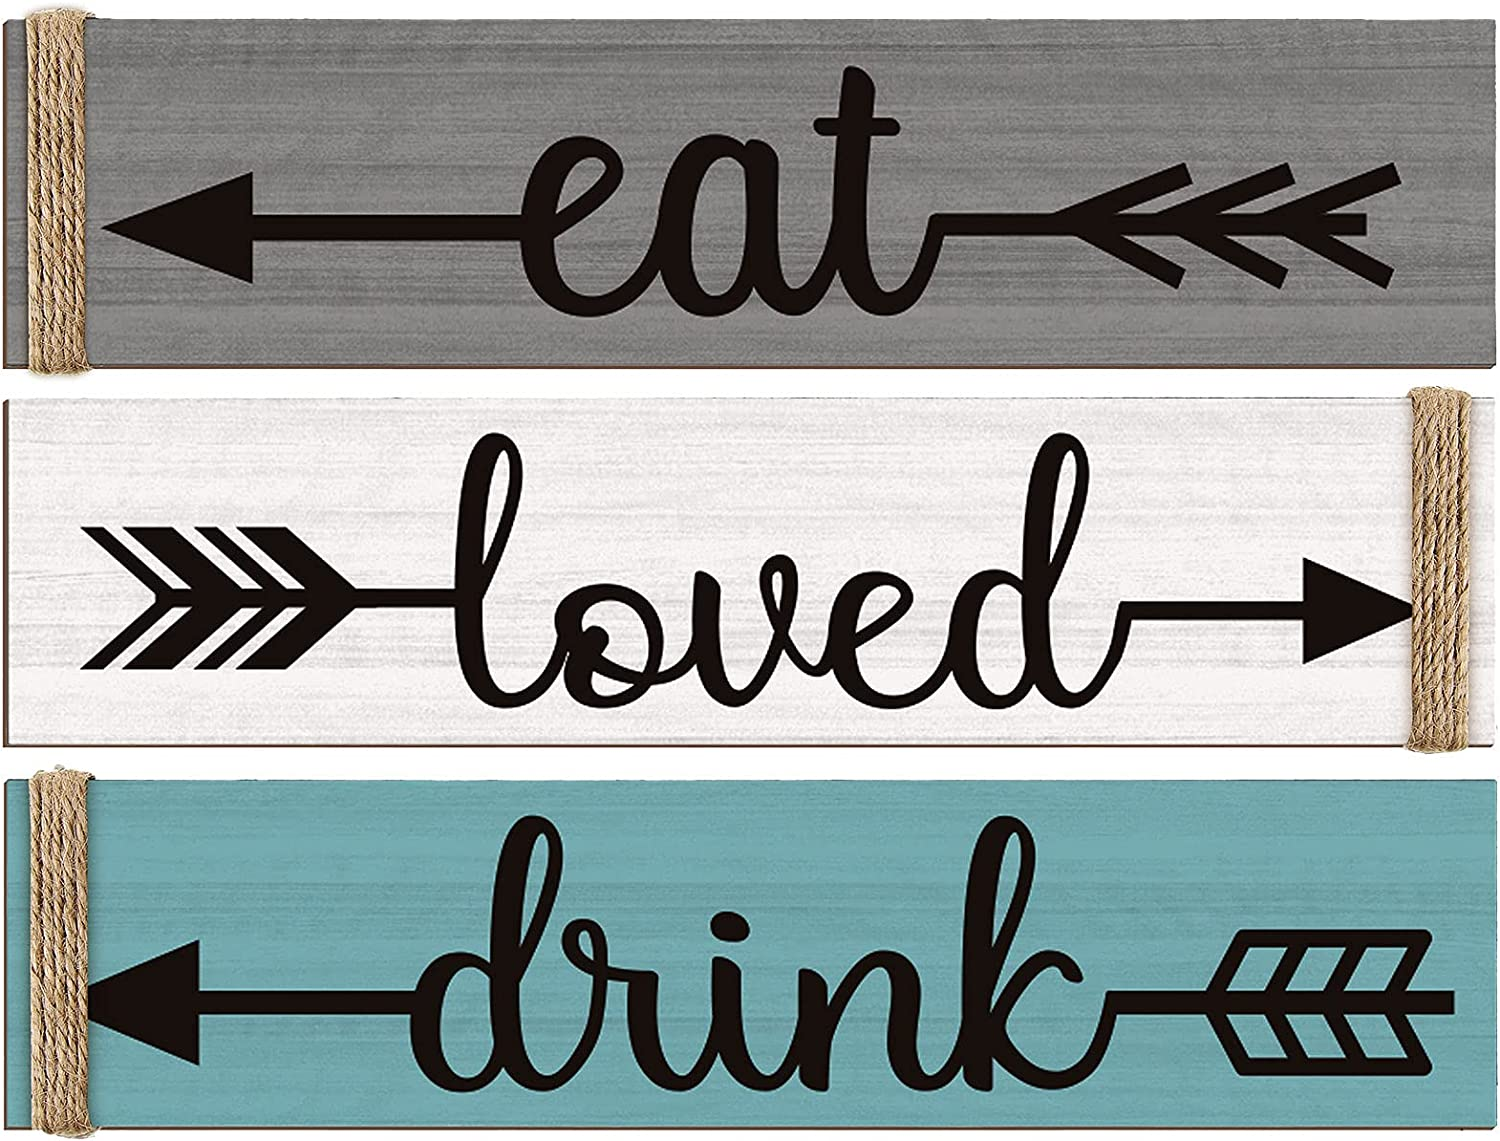 Jetec 3 Pieces Eat Loved Drink Sign Wood Kitchen Wall Decor Hanging Wood Signs Rustic Hanging Wood Home Sign for Home Kitchen Living Room Restaurant Indoor (Gray, White, Lake Blue)